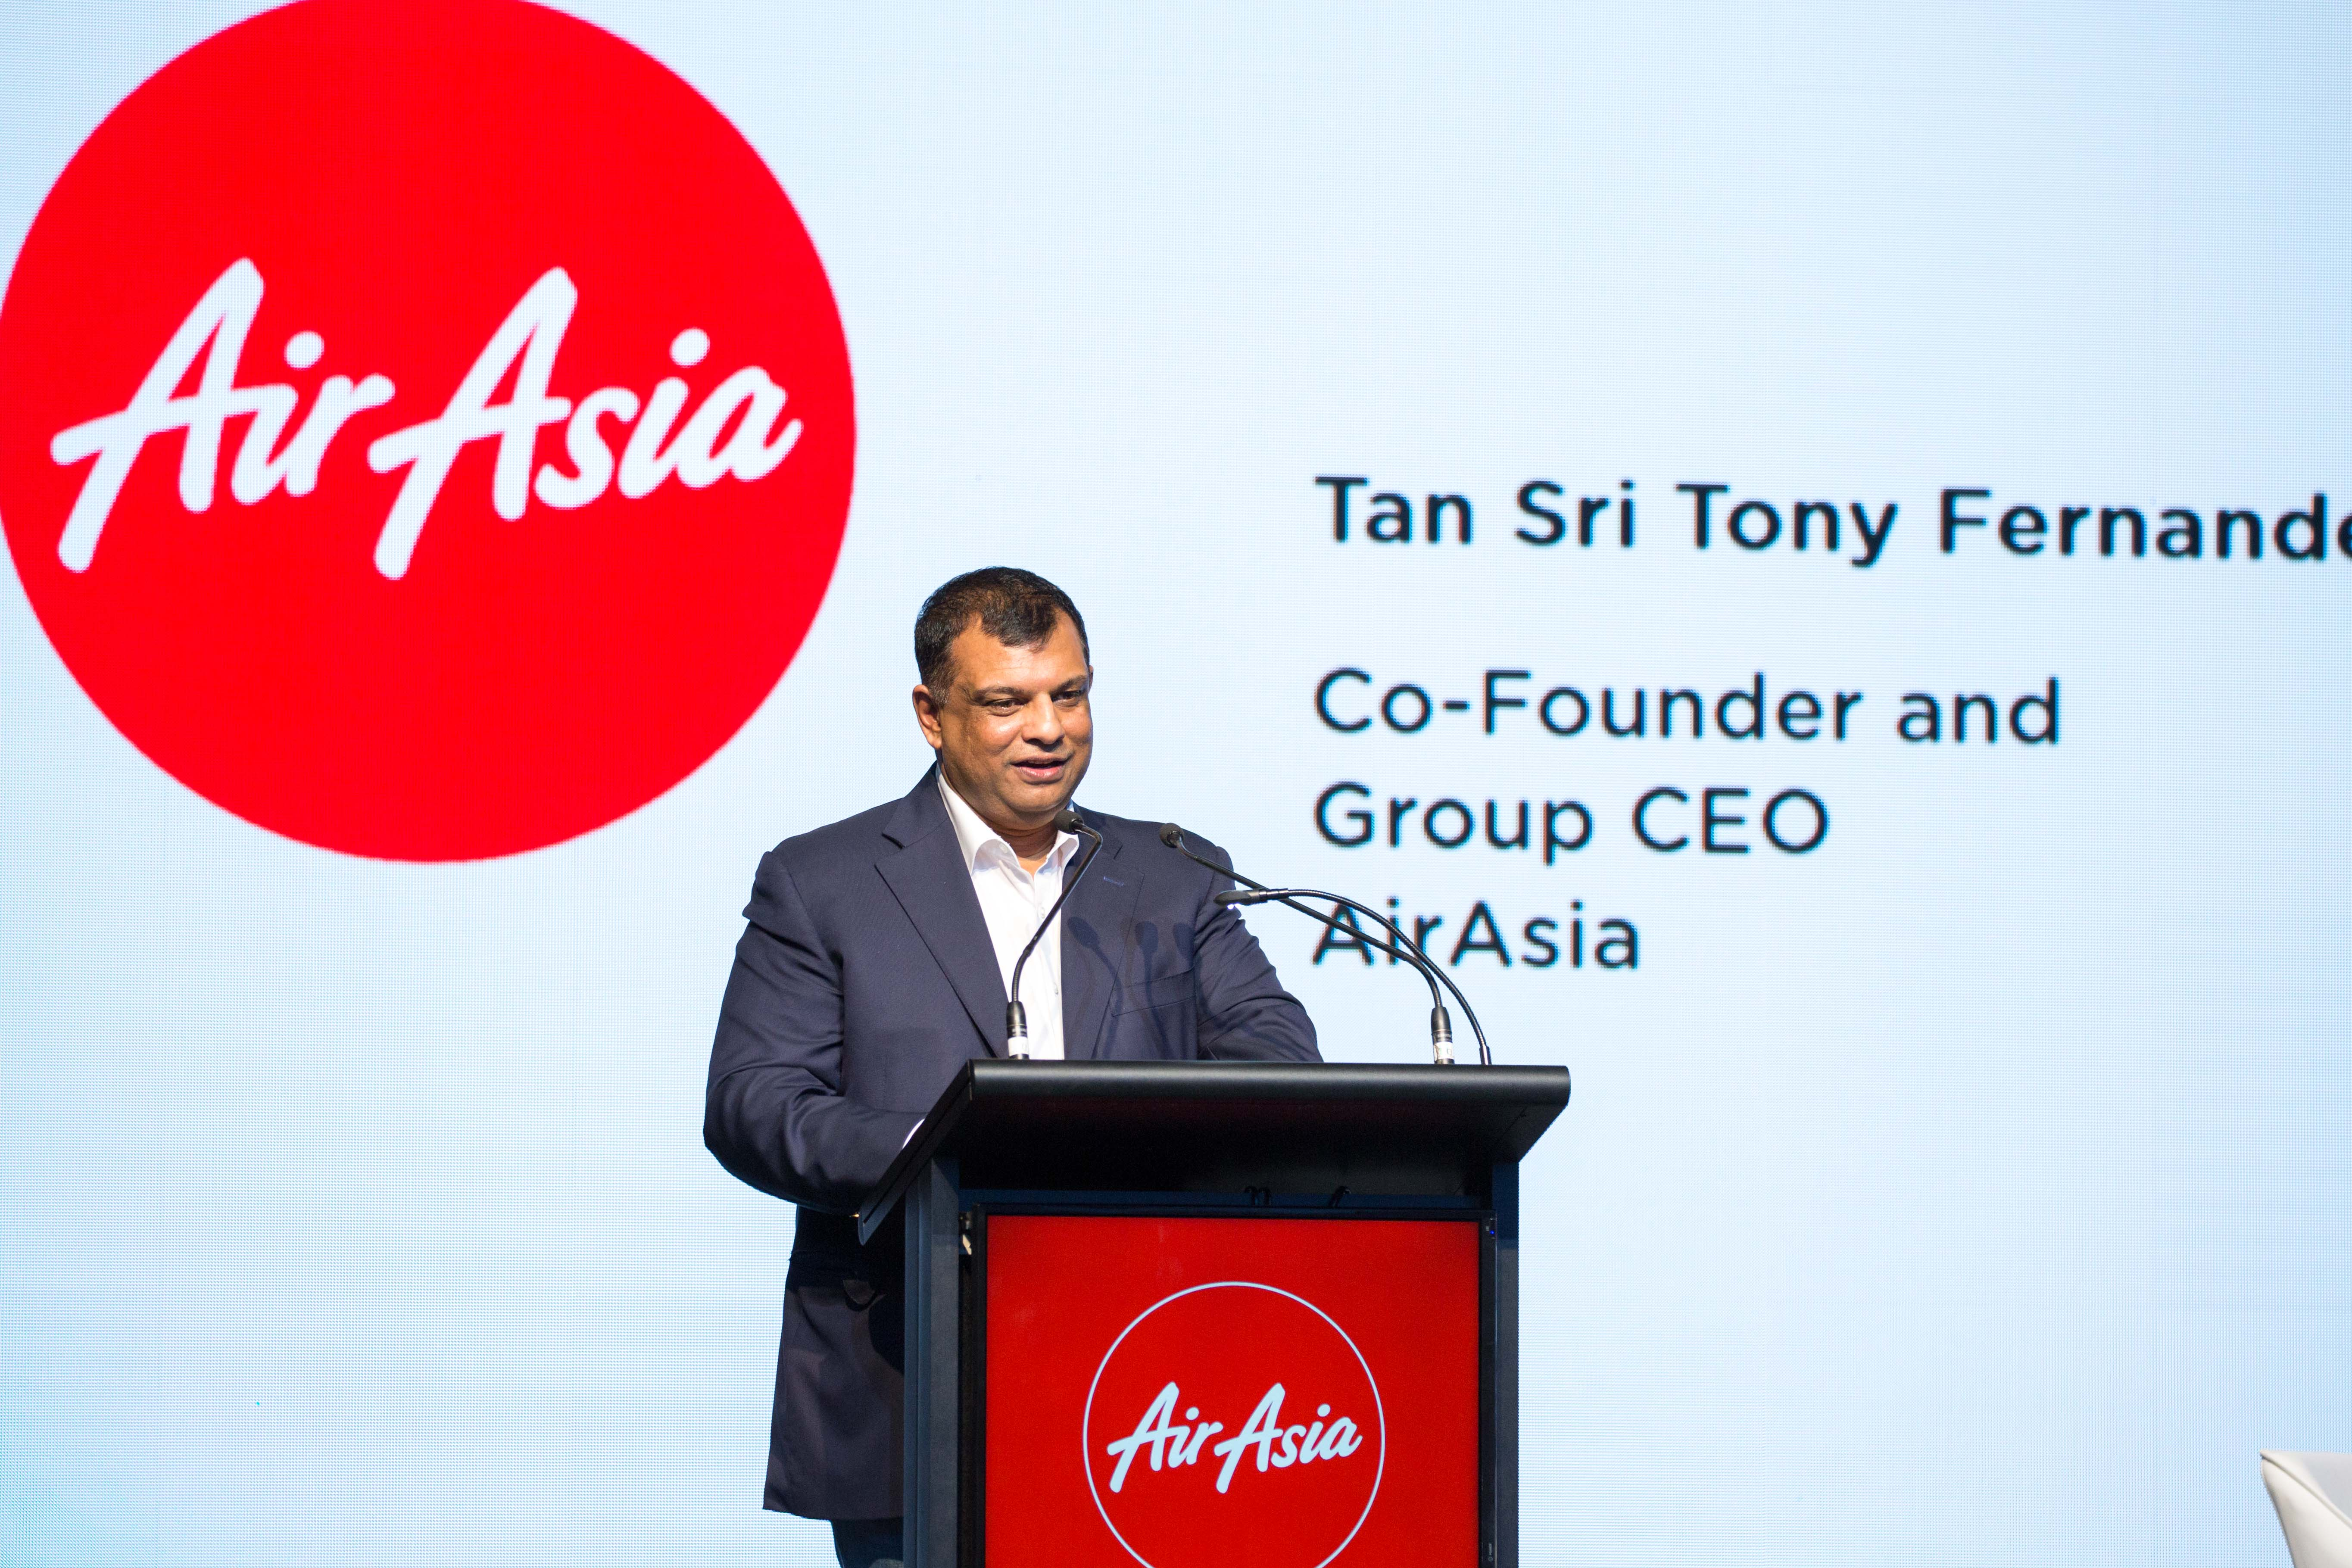 Tan Sri Tony Fernandes